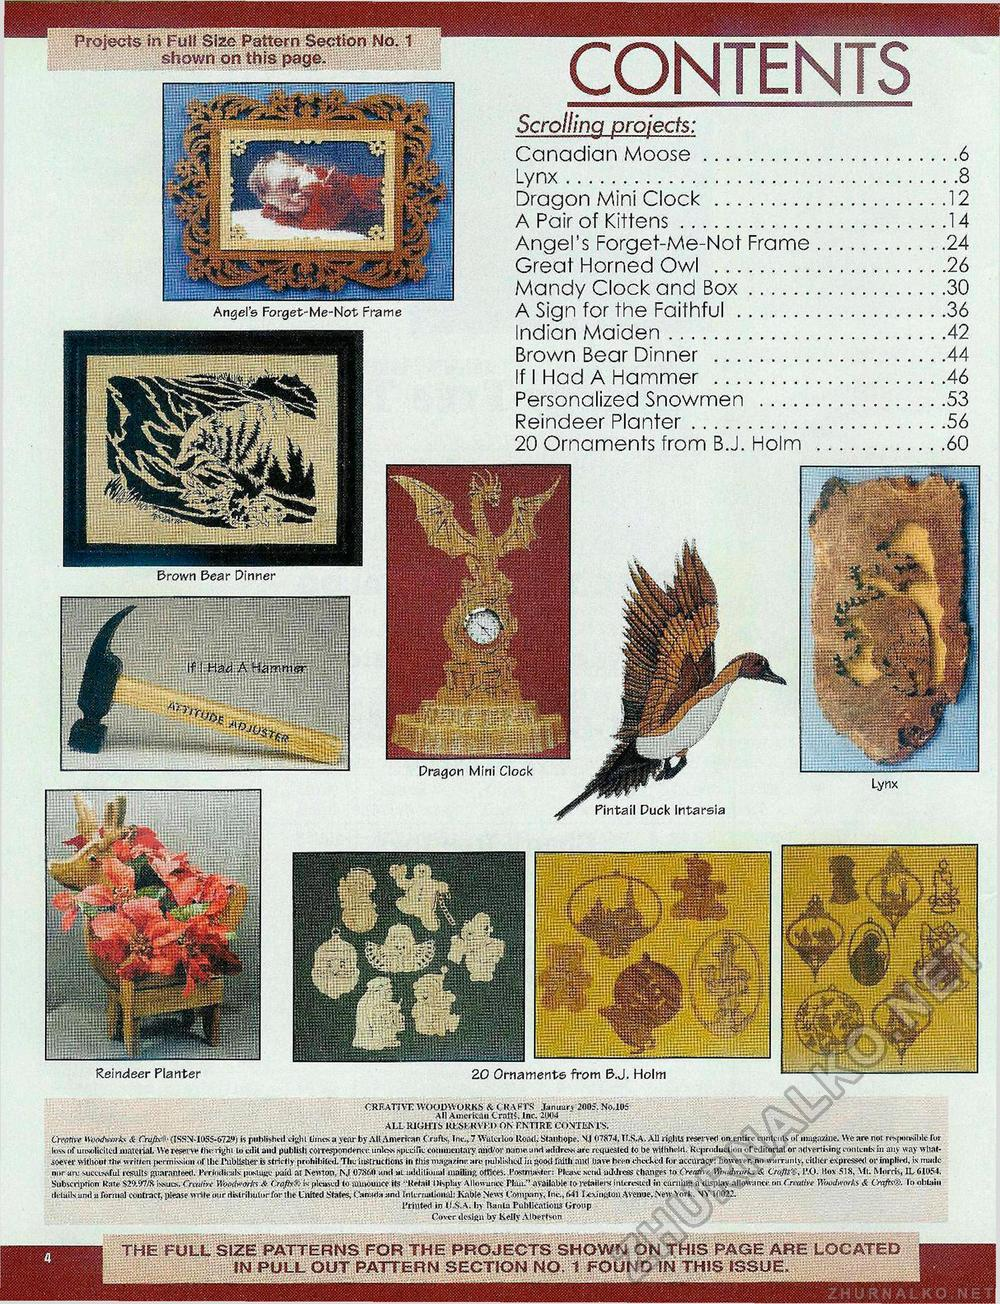 Creative Woodworks & crafts 2005-01, страница 4